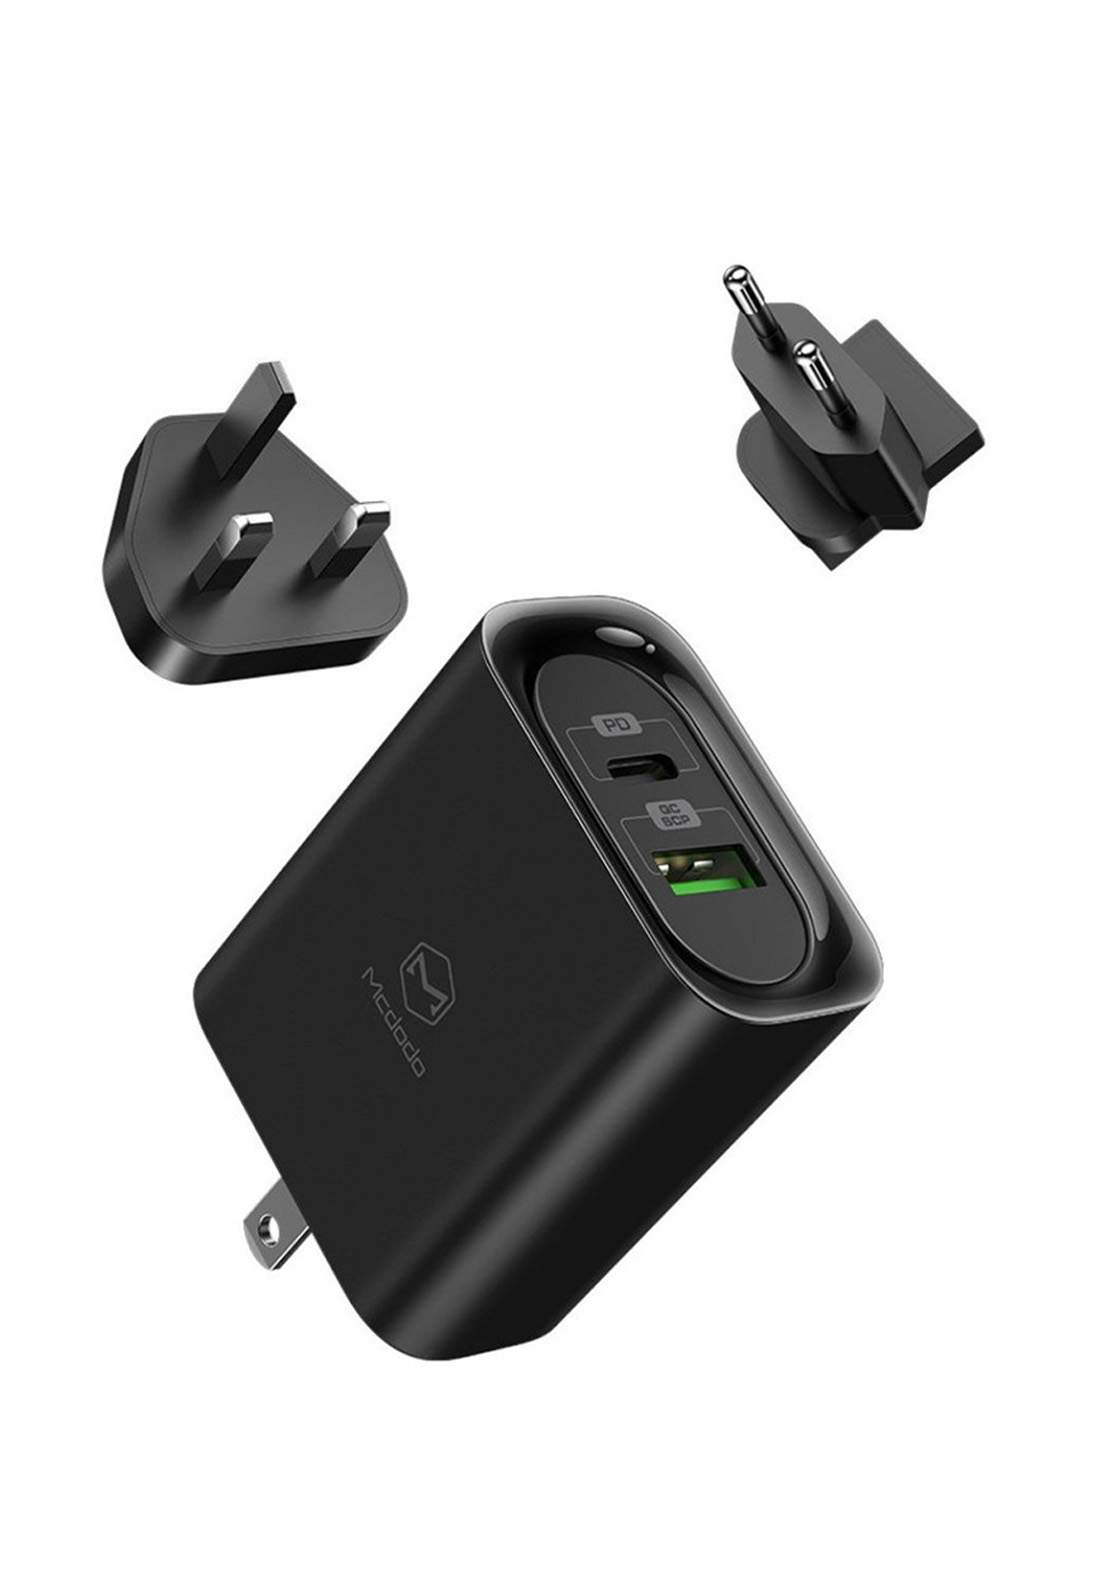 (175707)Mcdodo CH-5601 30W PD Travel Charger PD3.0 QC3.0  - Black شاحنة